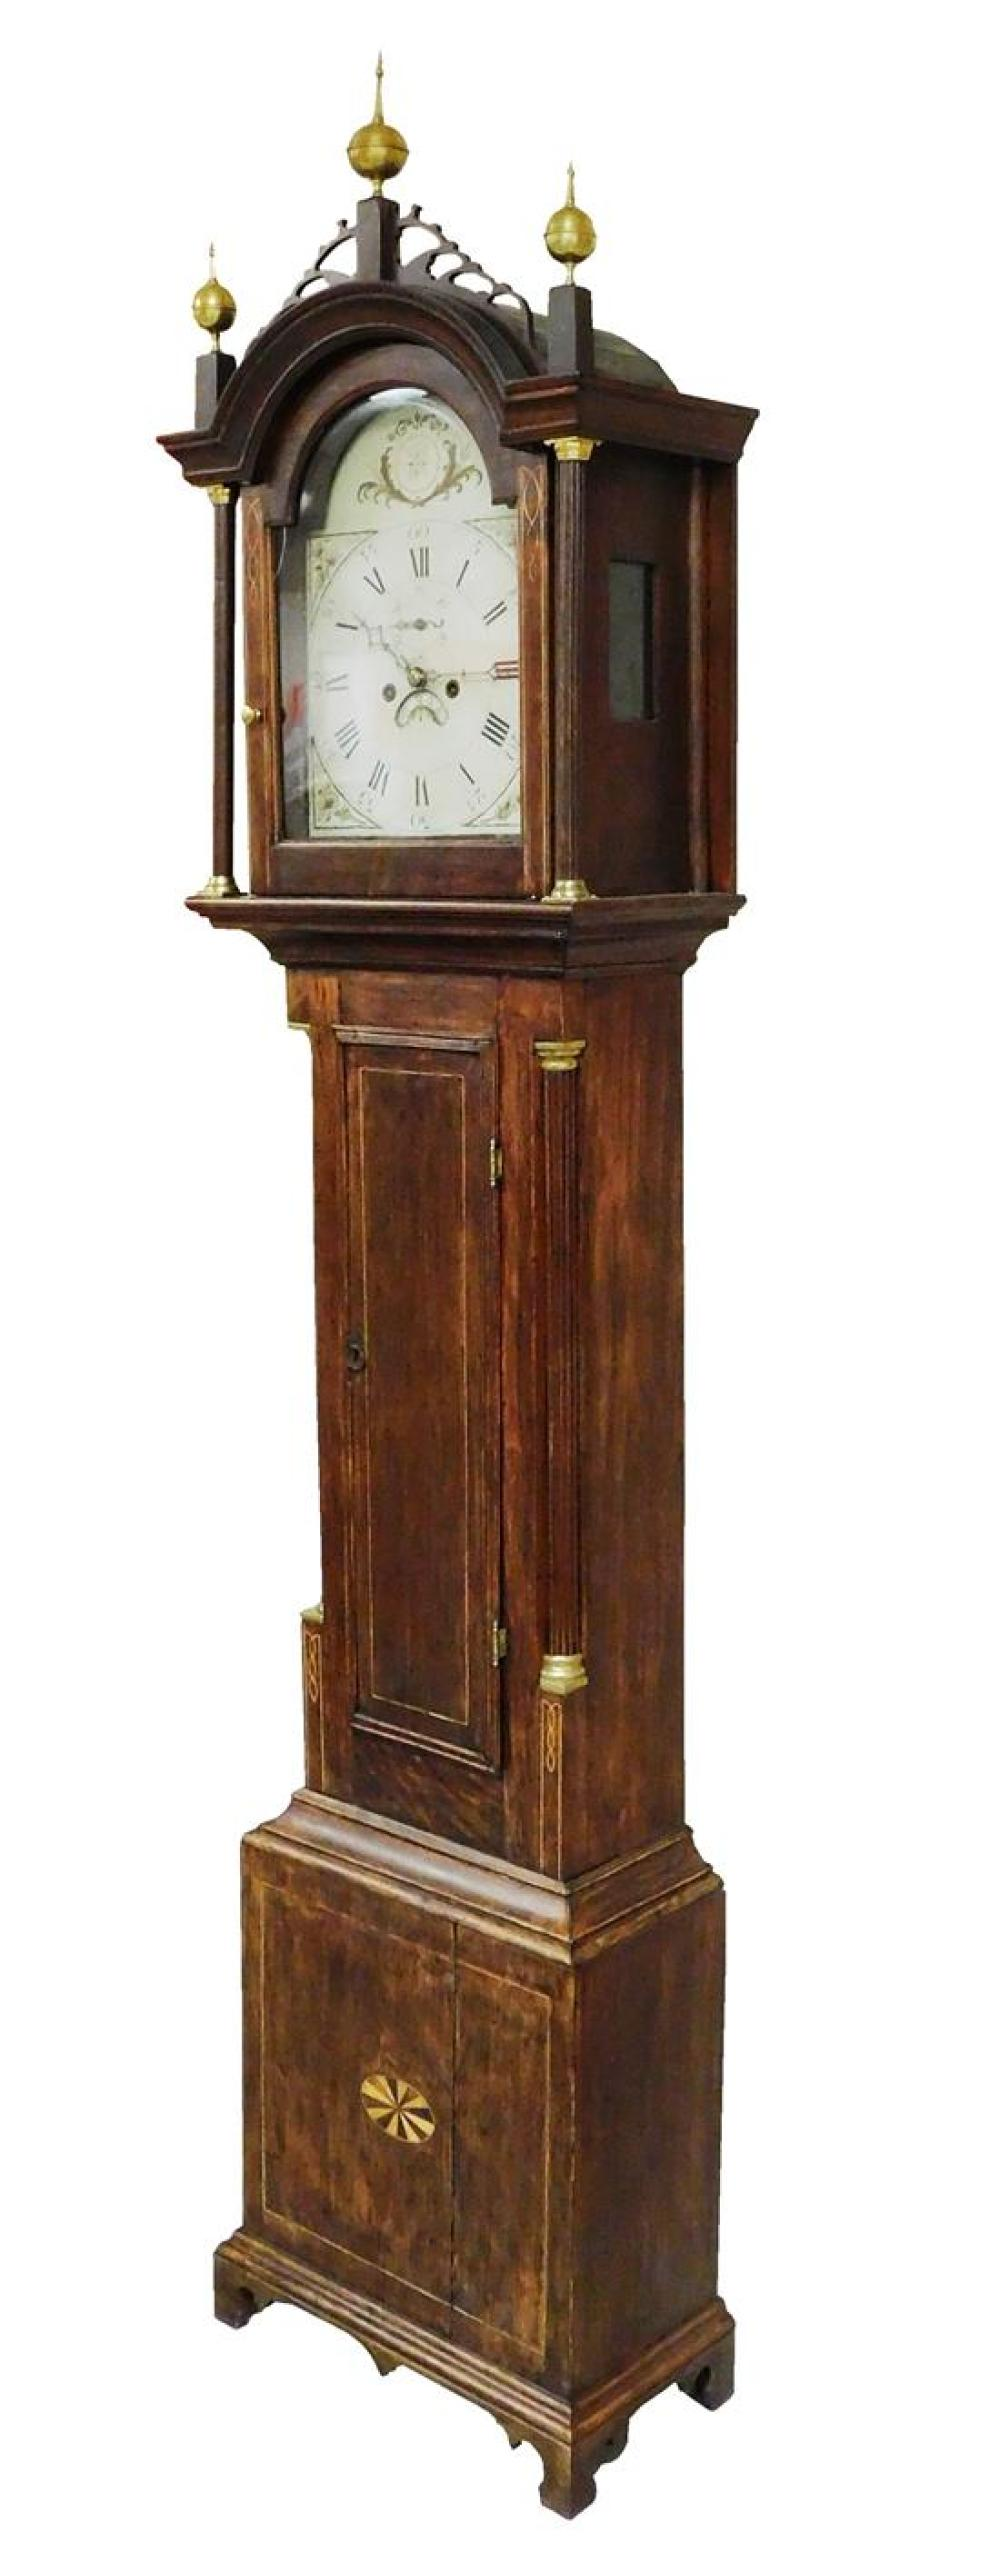 CLOCK: Tall clock, attributed maker Ivory Hall of Concord, New Hampshire, c. 1815-1820, birch with cherry trim in hood moldings, lig...